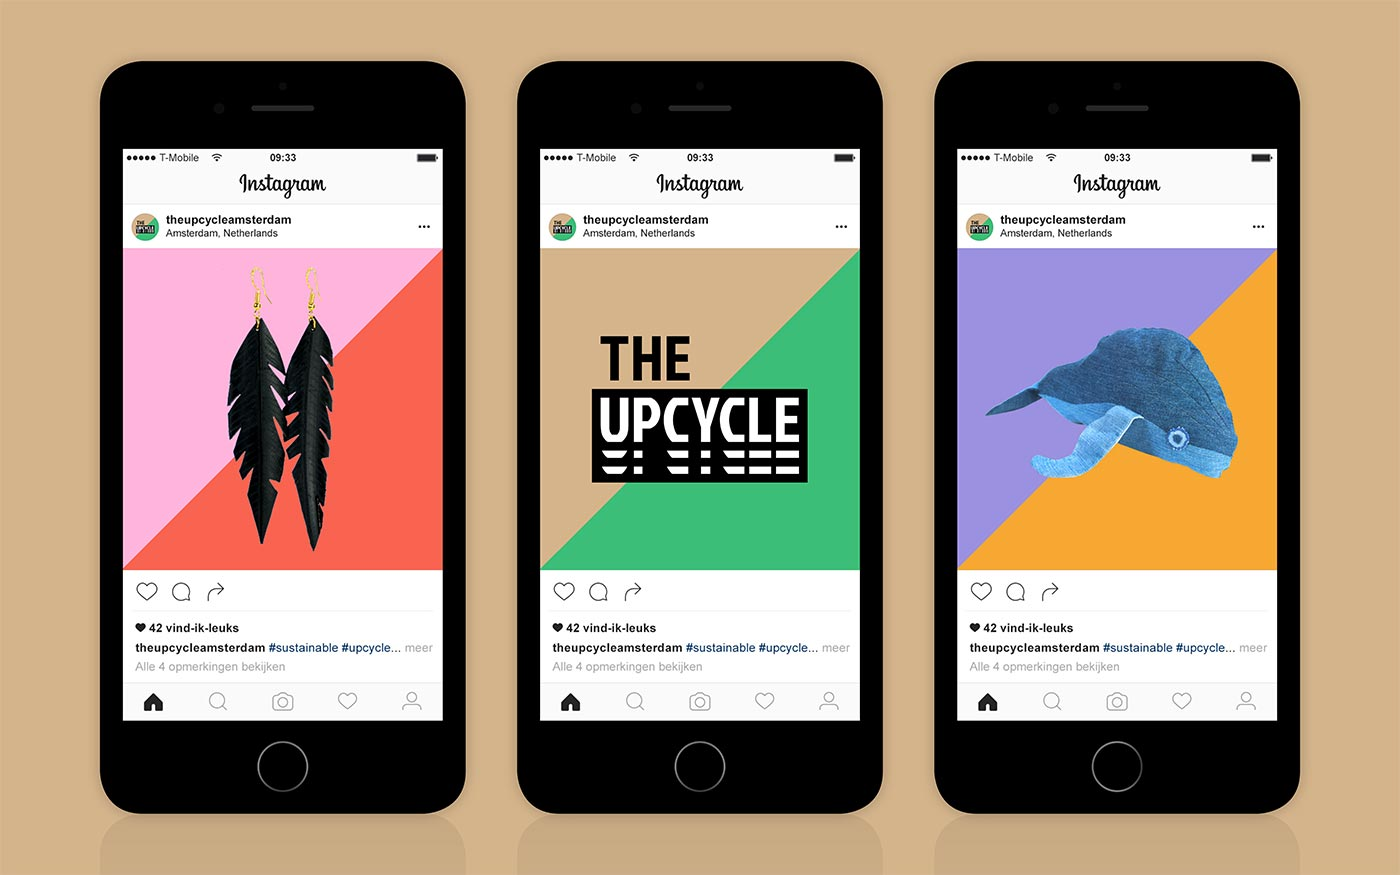 The Upcycle Instagram